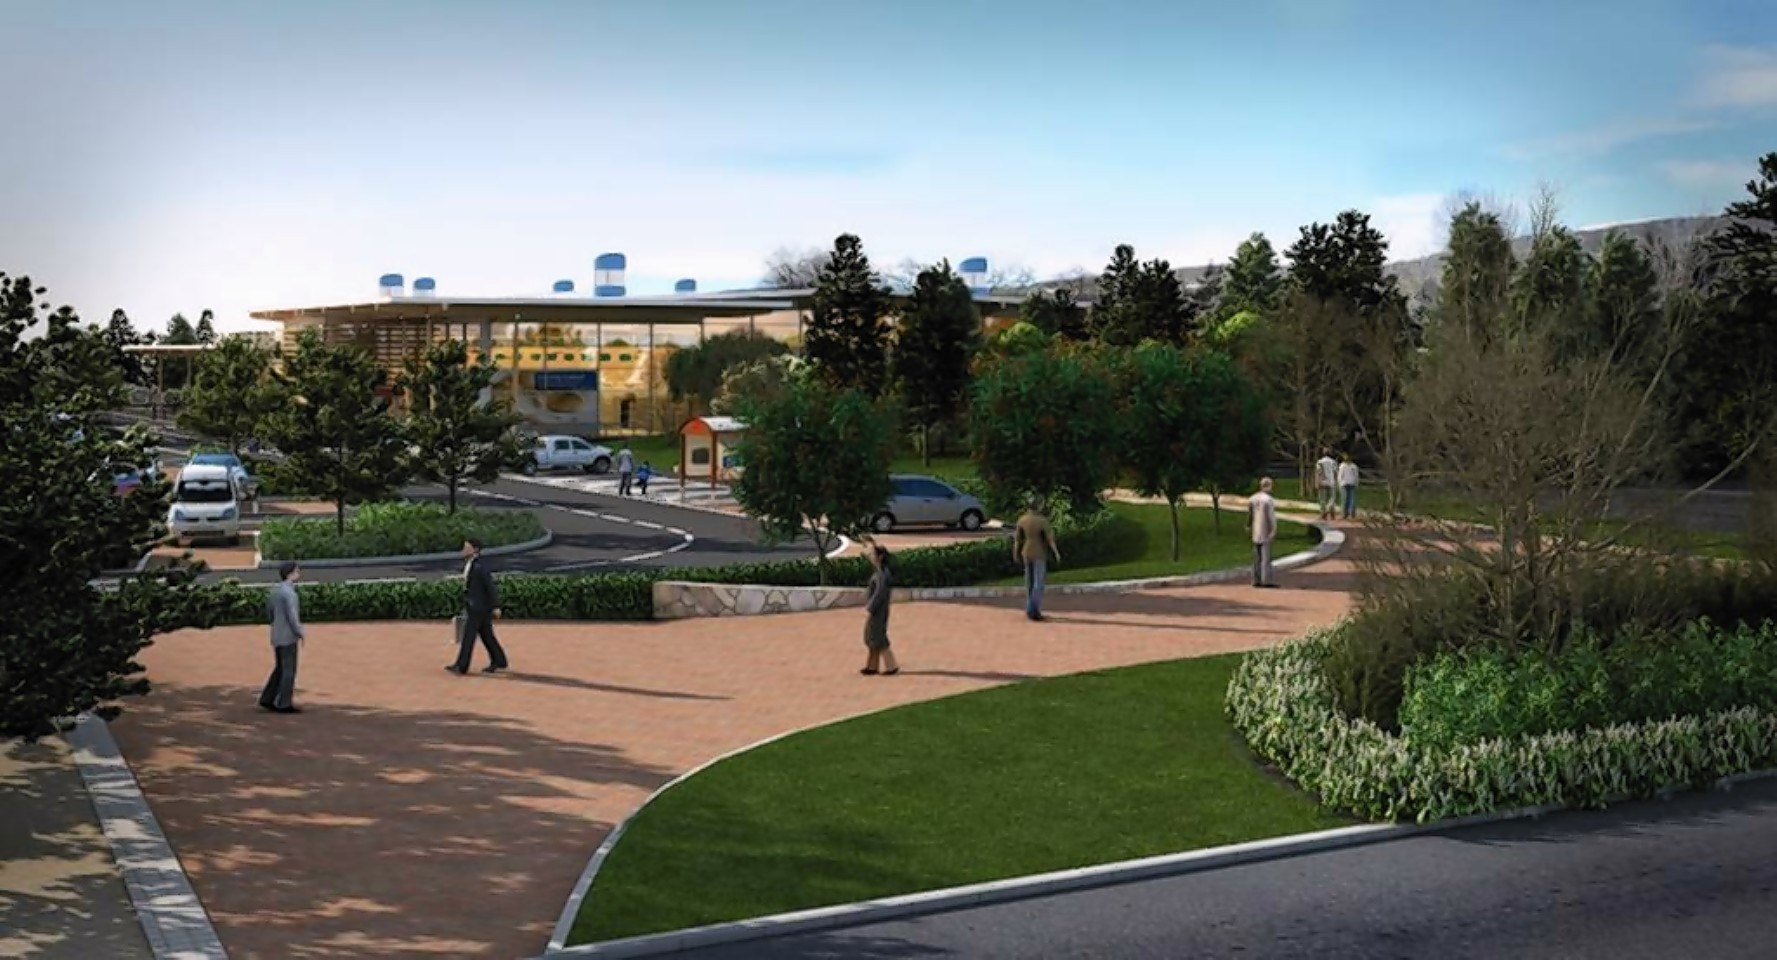 An artists impression of how the Tesco in Aviemore may have looked